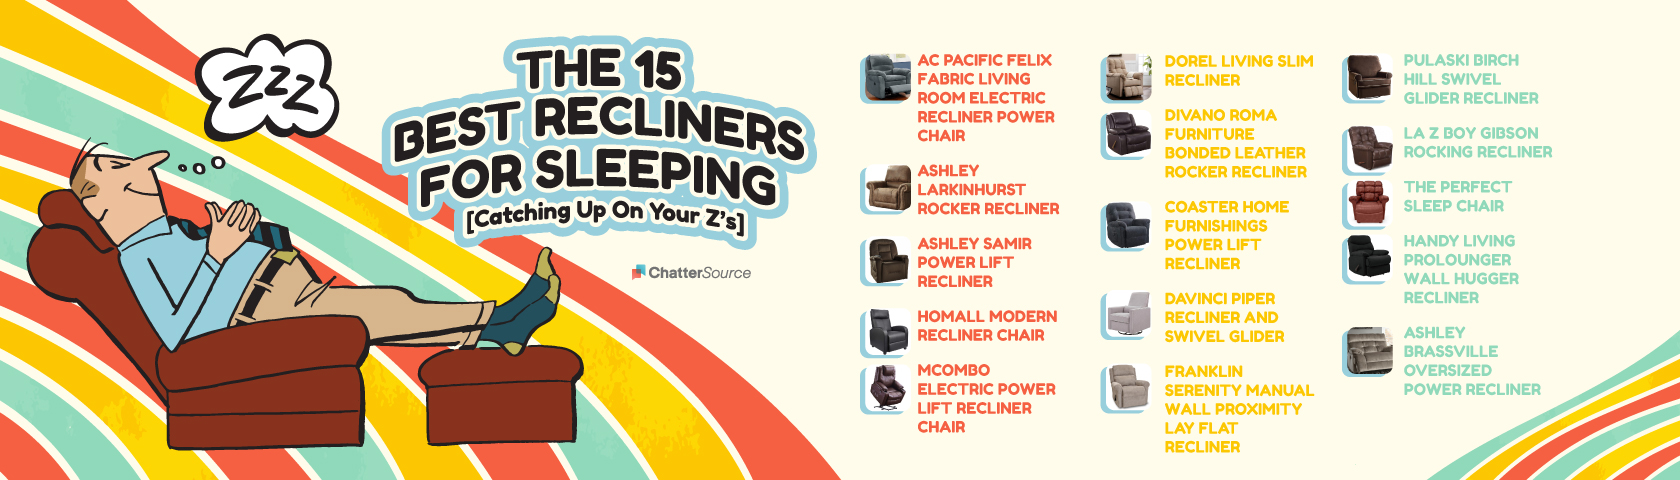 Recliners for sleeping infographic